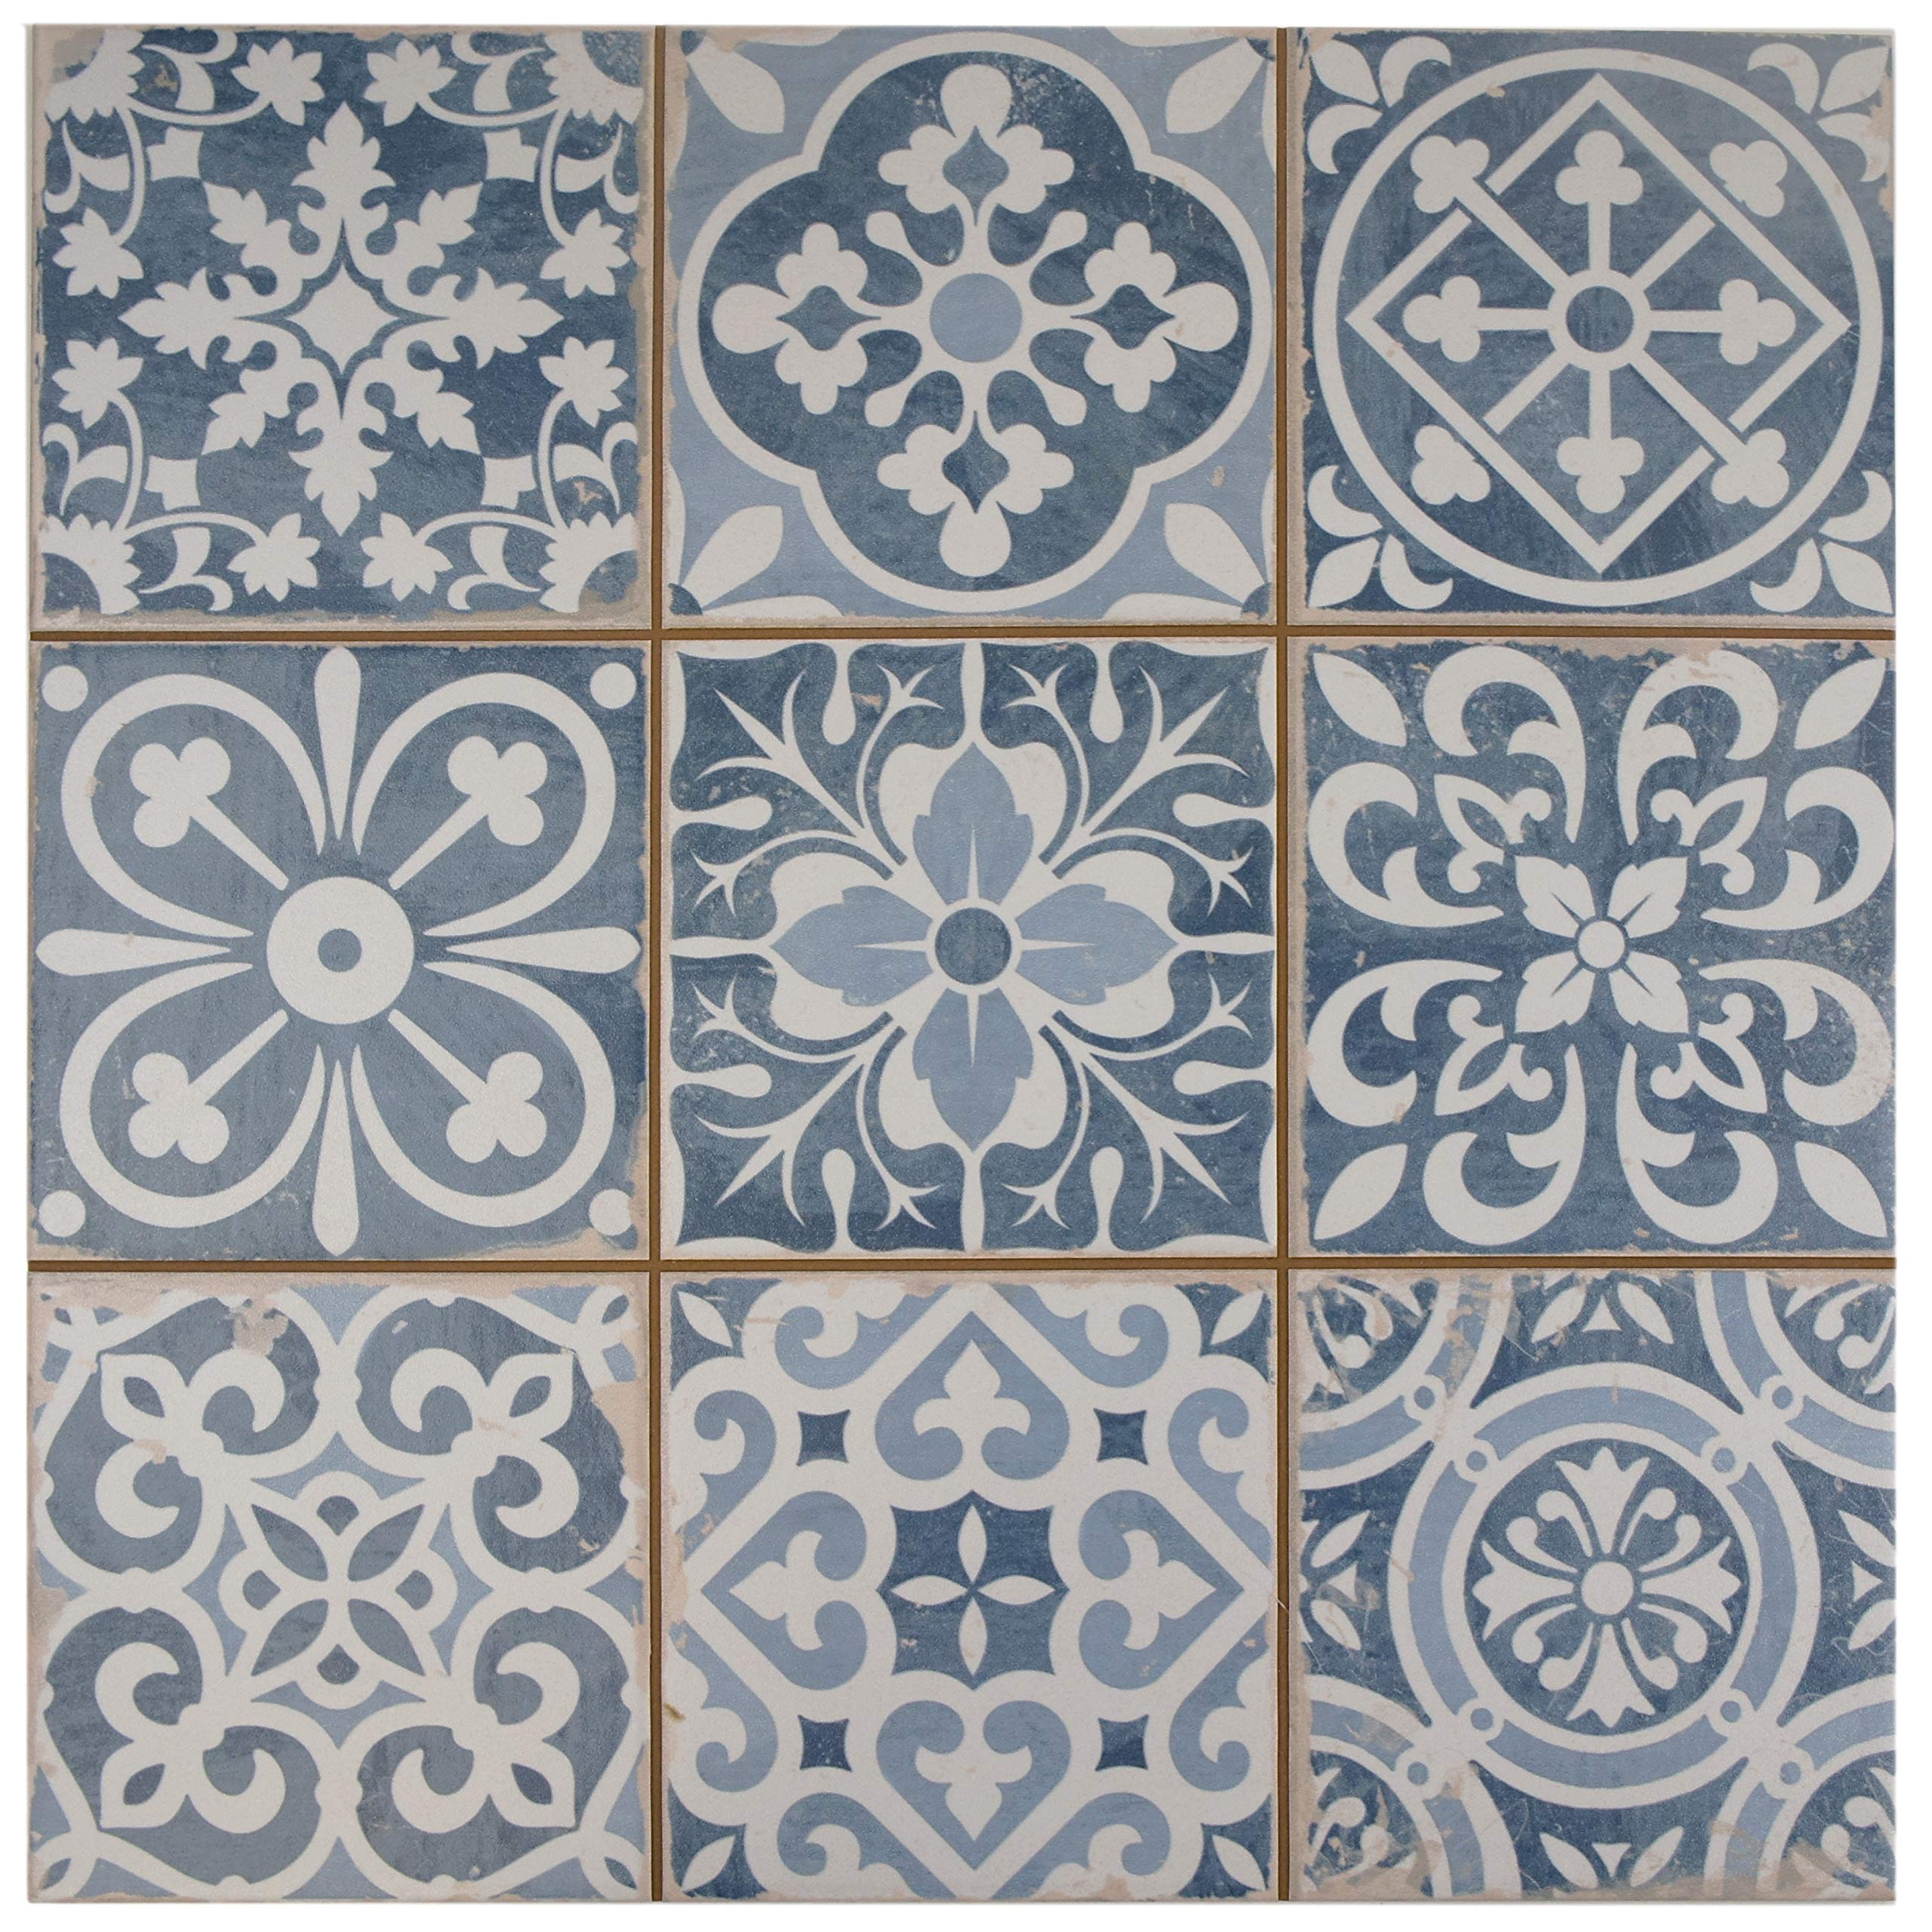 SomerTile FPEFAEA Romania Ceramic Floor and Wall Tile, 13'' x 13'', Blue